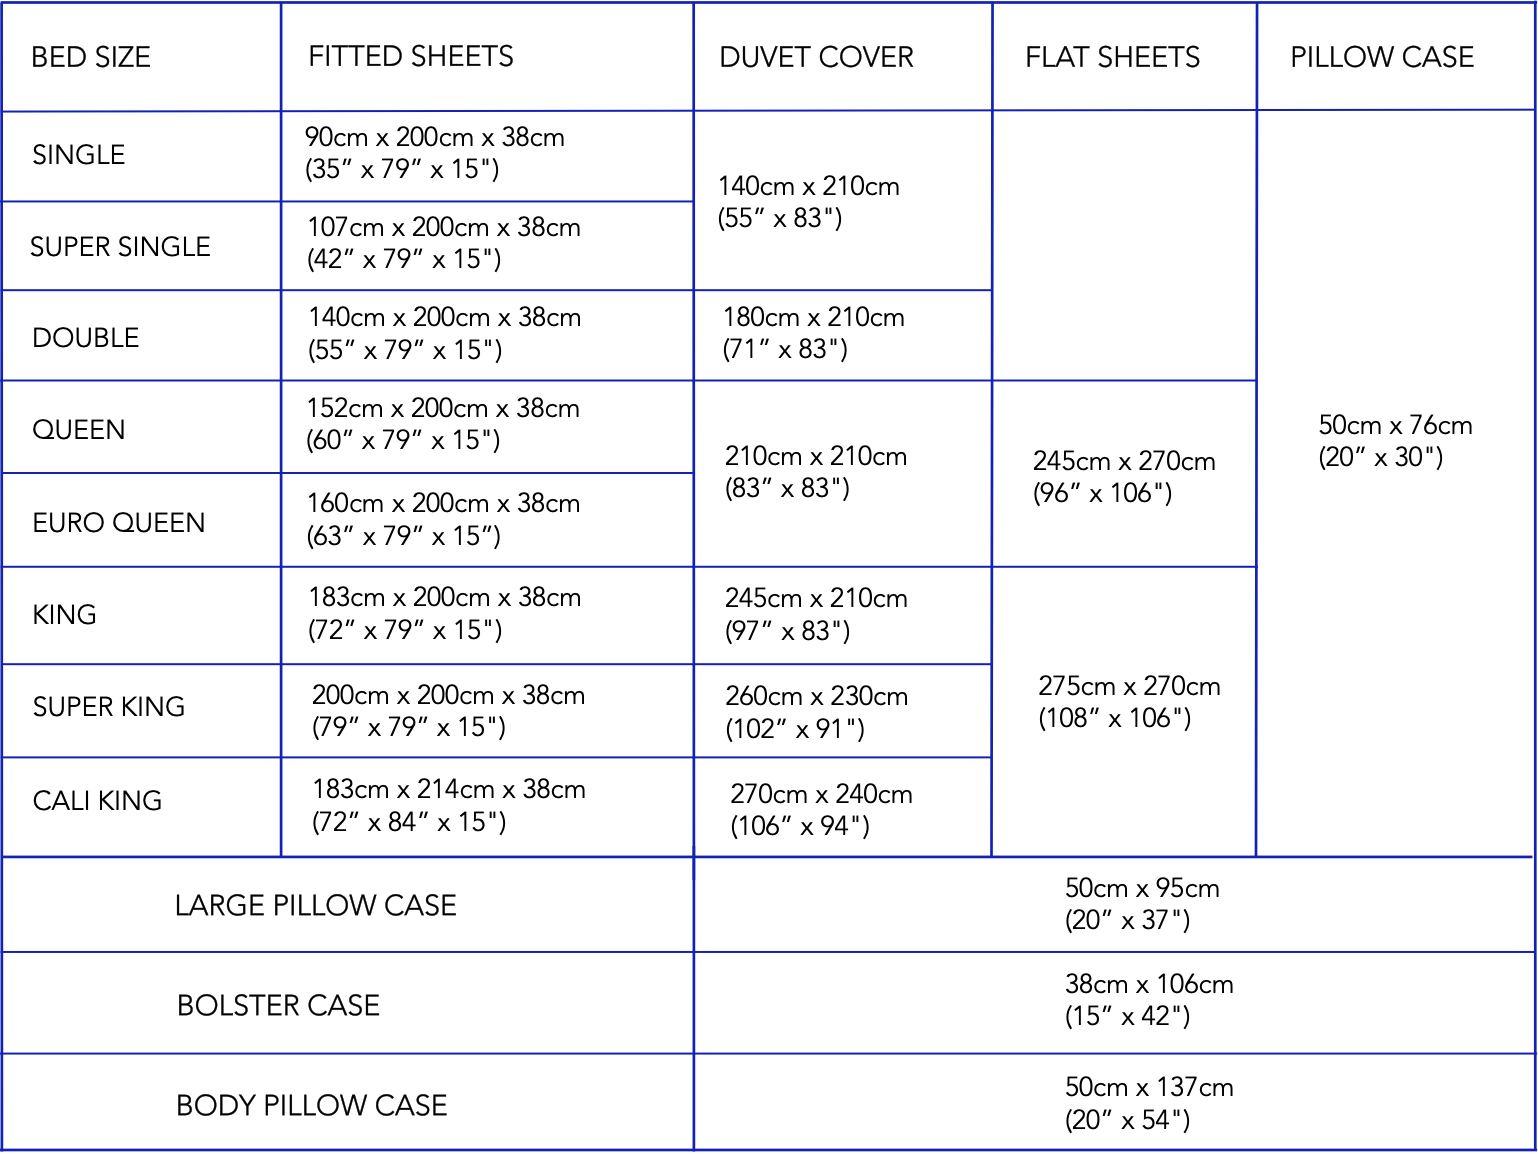 sojao_bedsheets_size_guide